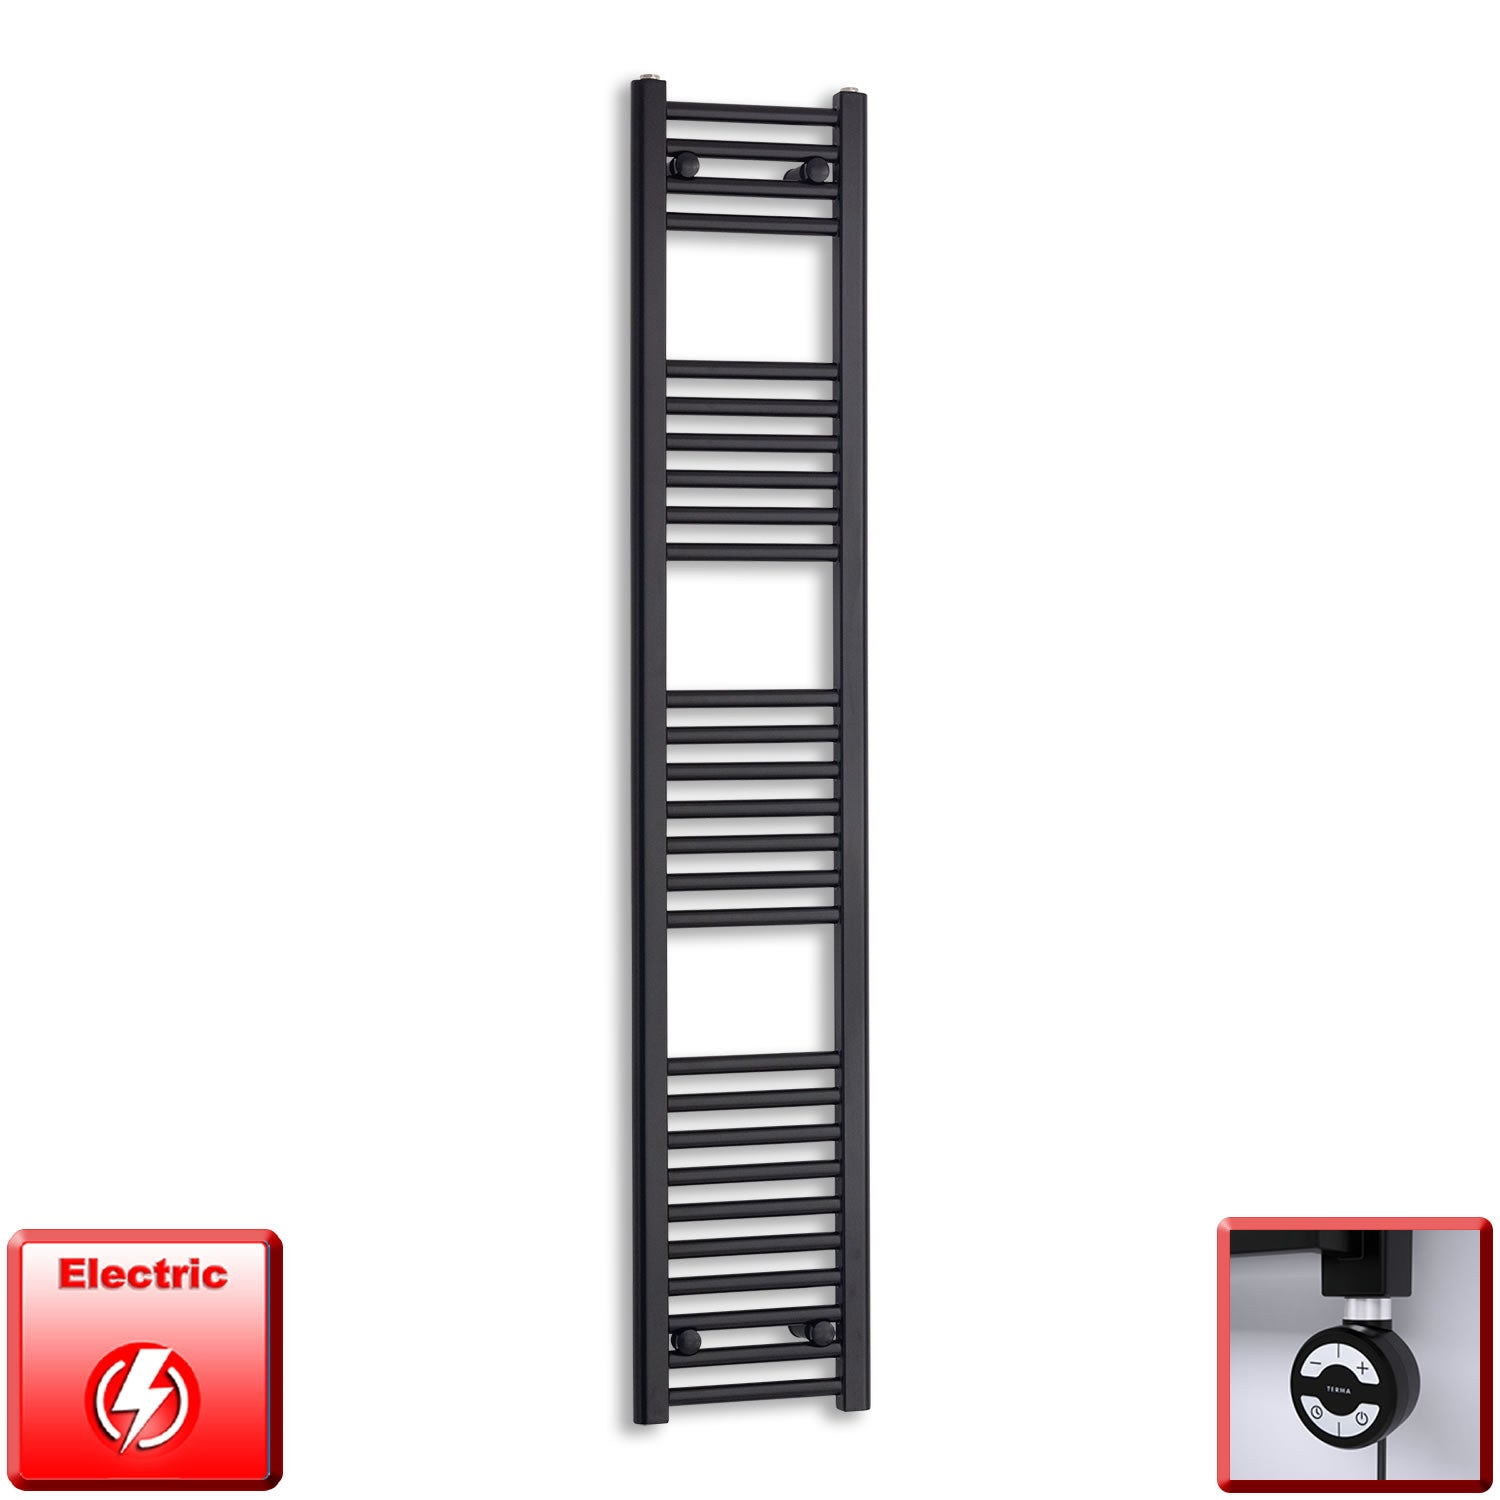 300mm Wide 1600mm High Flat Black Pre-Filled Electric Heated Towel Rail Radiator HTR,MOA Thermostatic Element